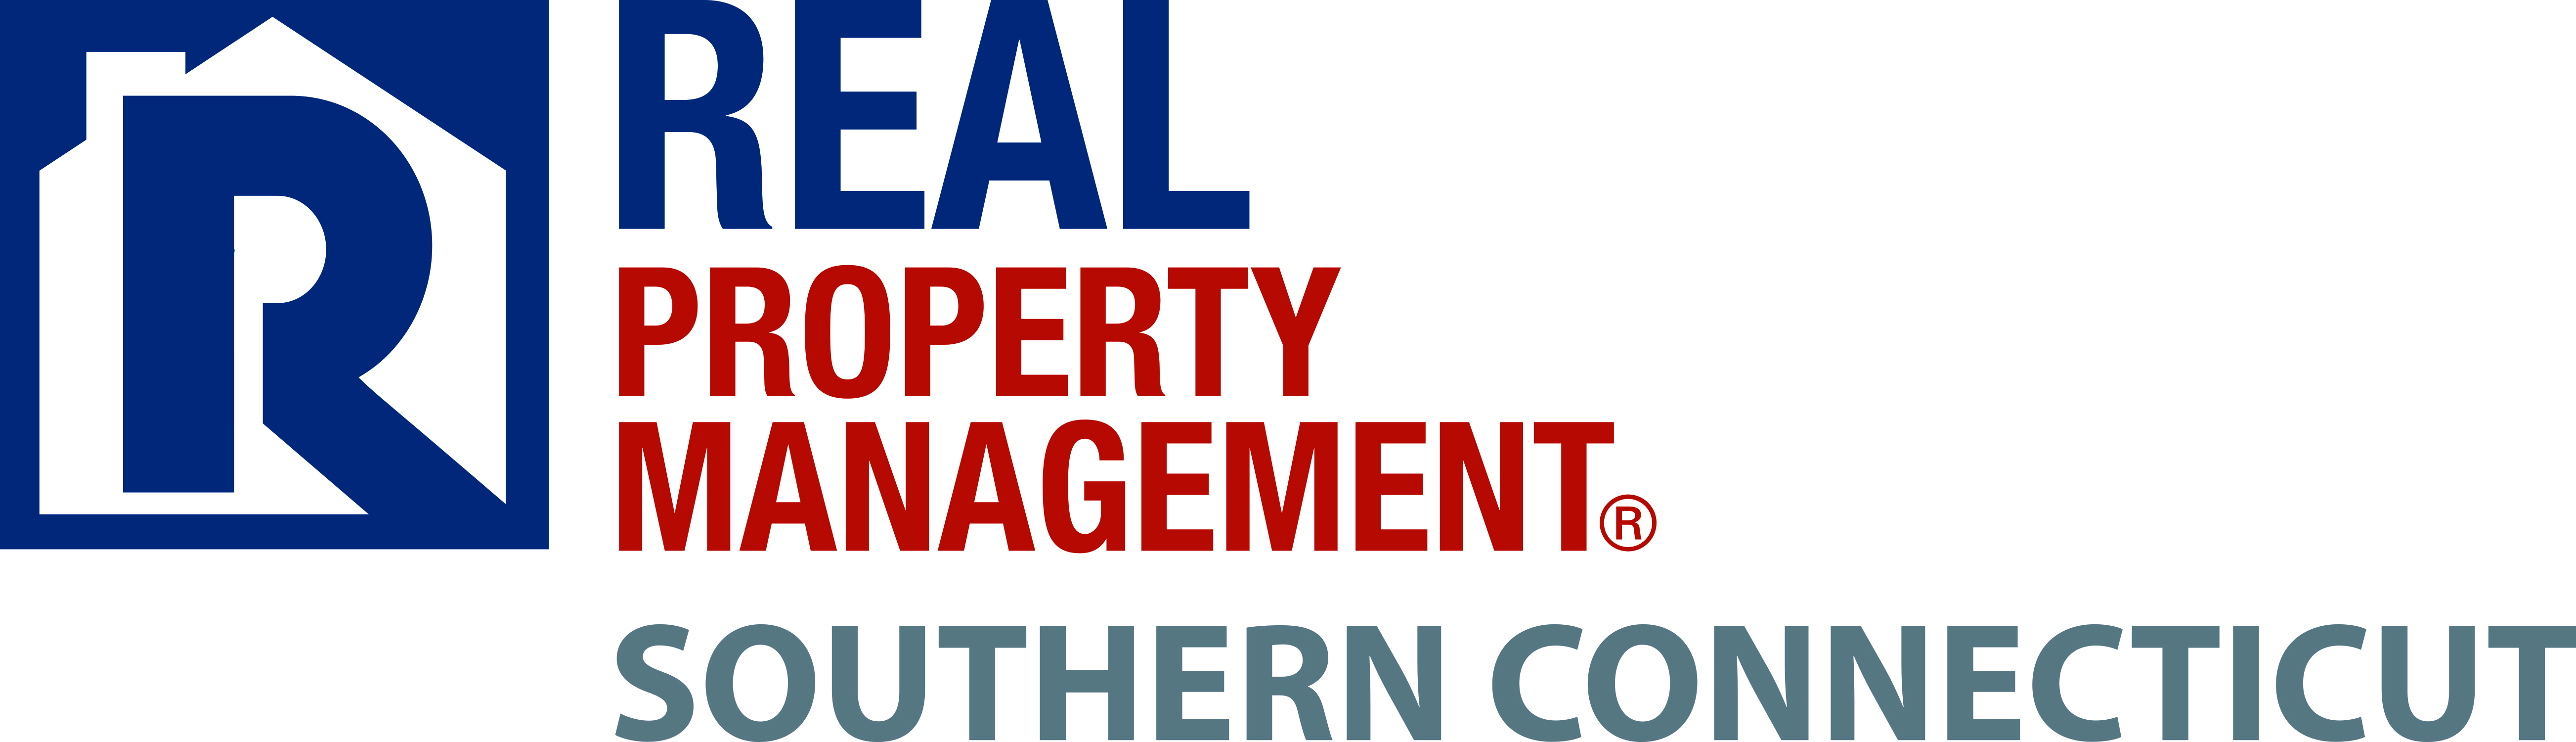 Most Consistent Property Manager in Southern CT | RPM Southern CT